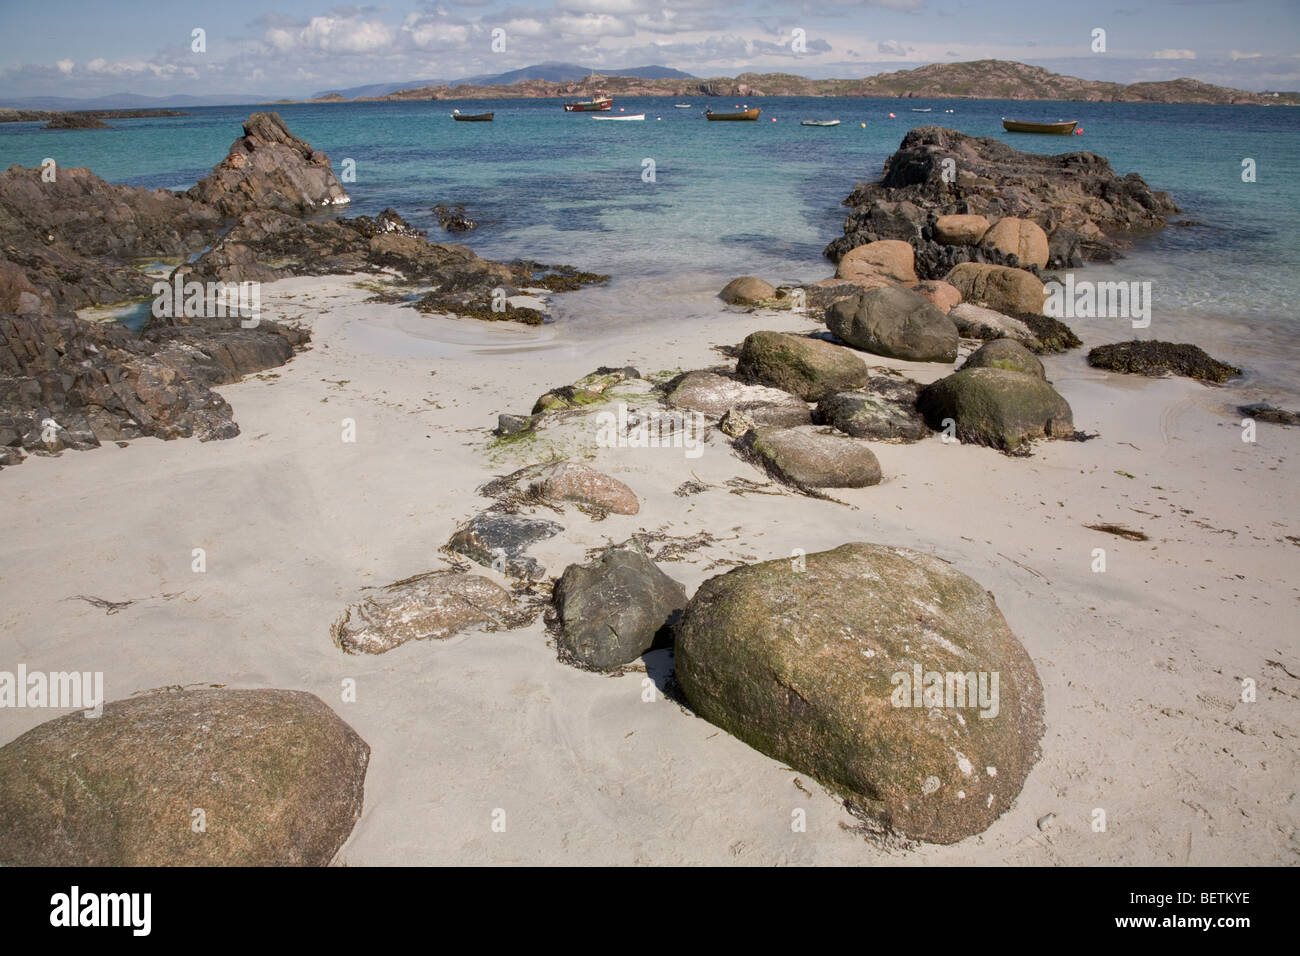 Iona white sands, beach and rocks looking out to the sound of mull and small boats. Isle of mull in the distance - Stock Image